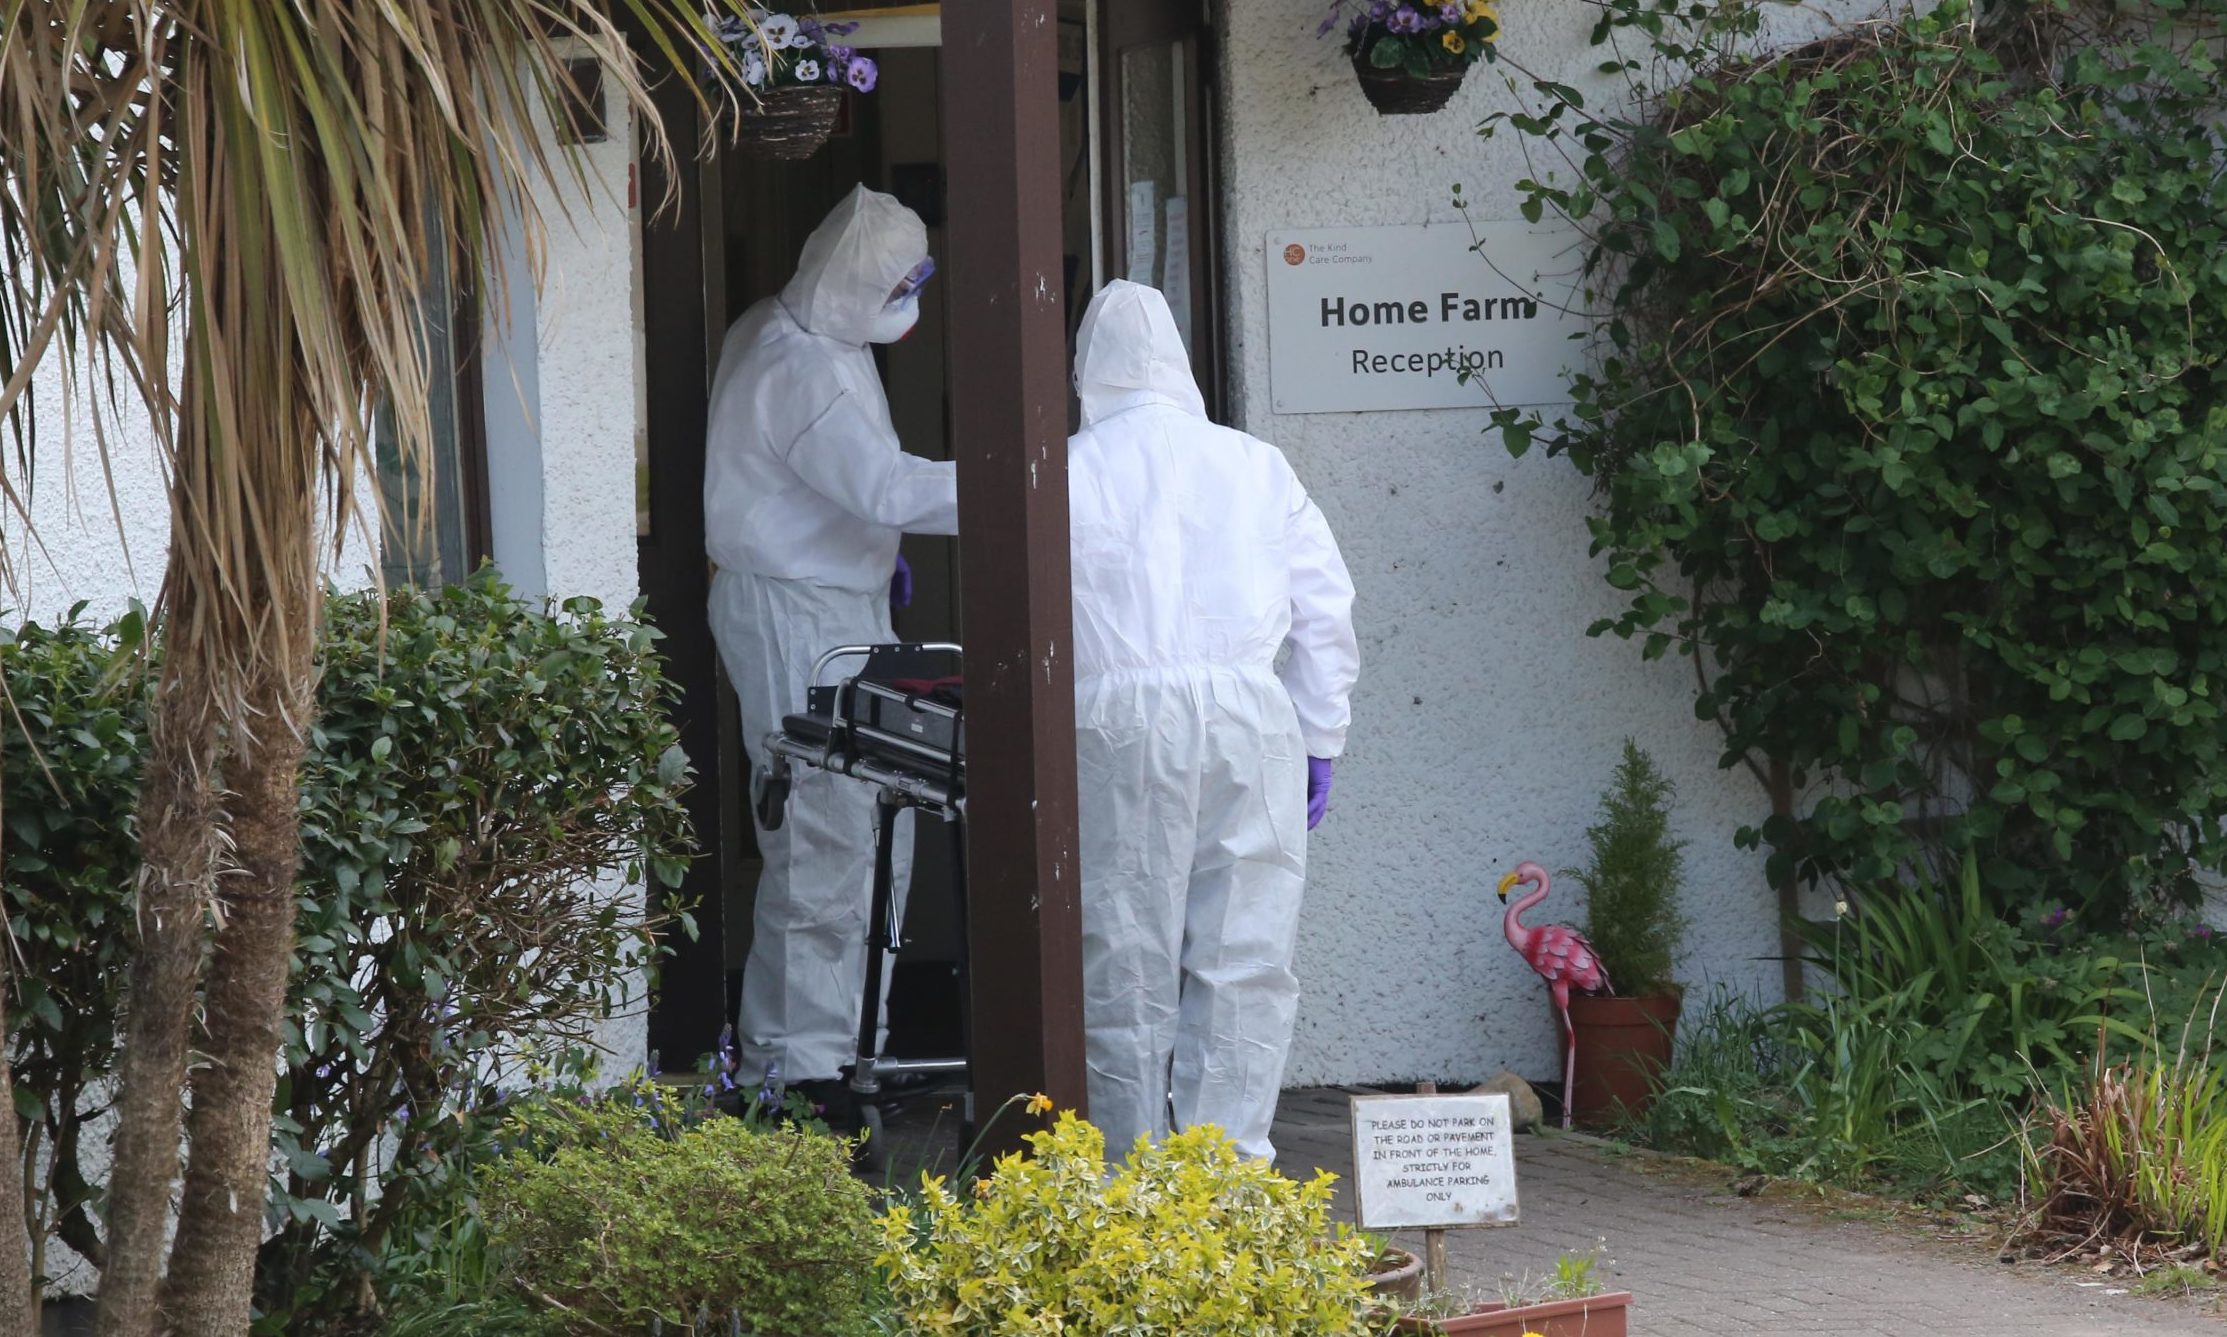 Home Farm care home on the Isle of Skye, where there has been an outbreak of coronavirus.